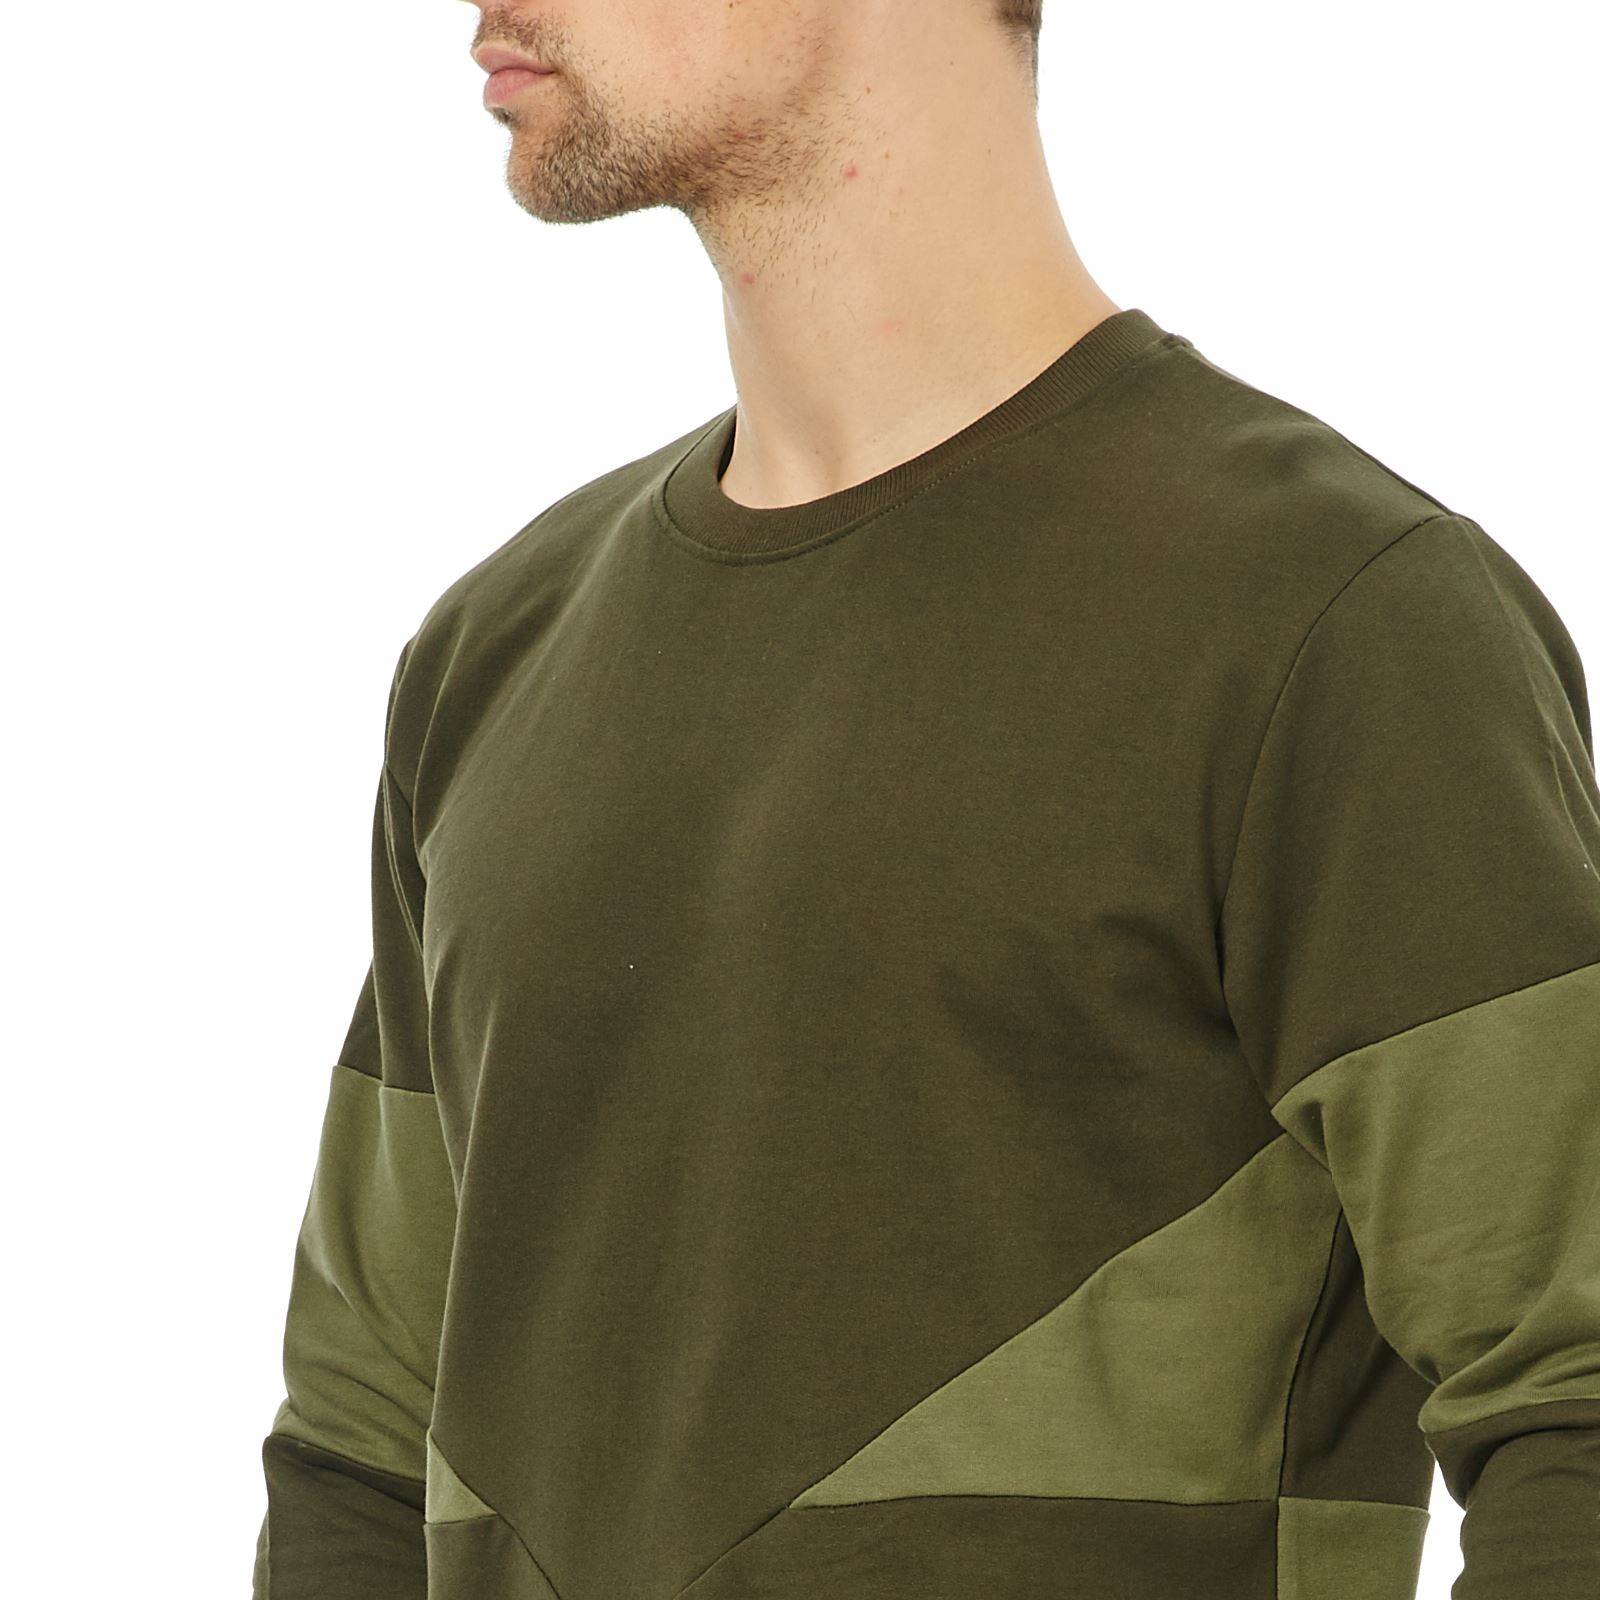 Only Brandalley Sweat Shirt amp; Olive Sons rpXTAWwHqr